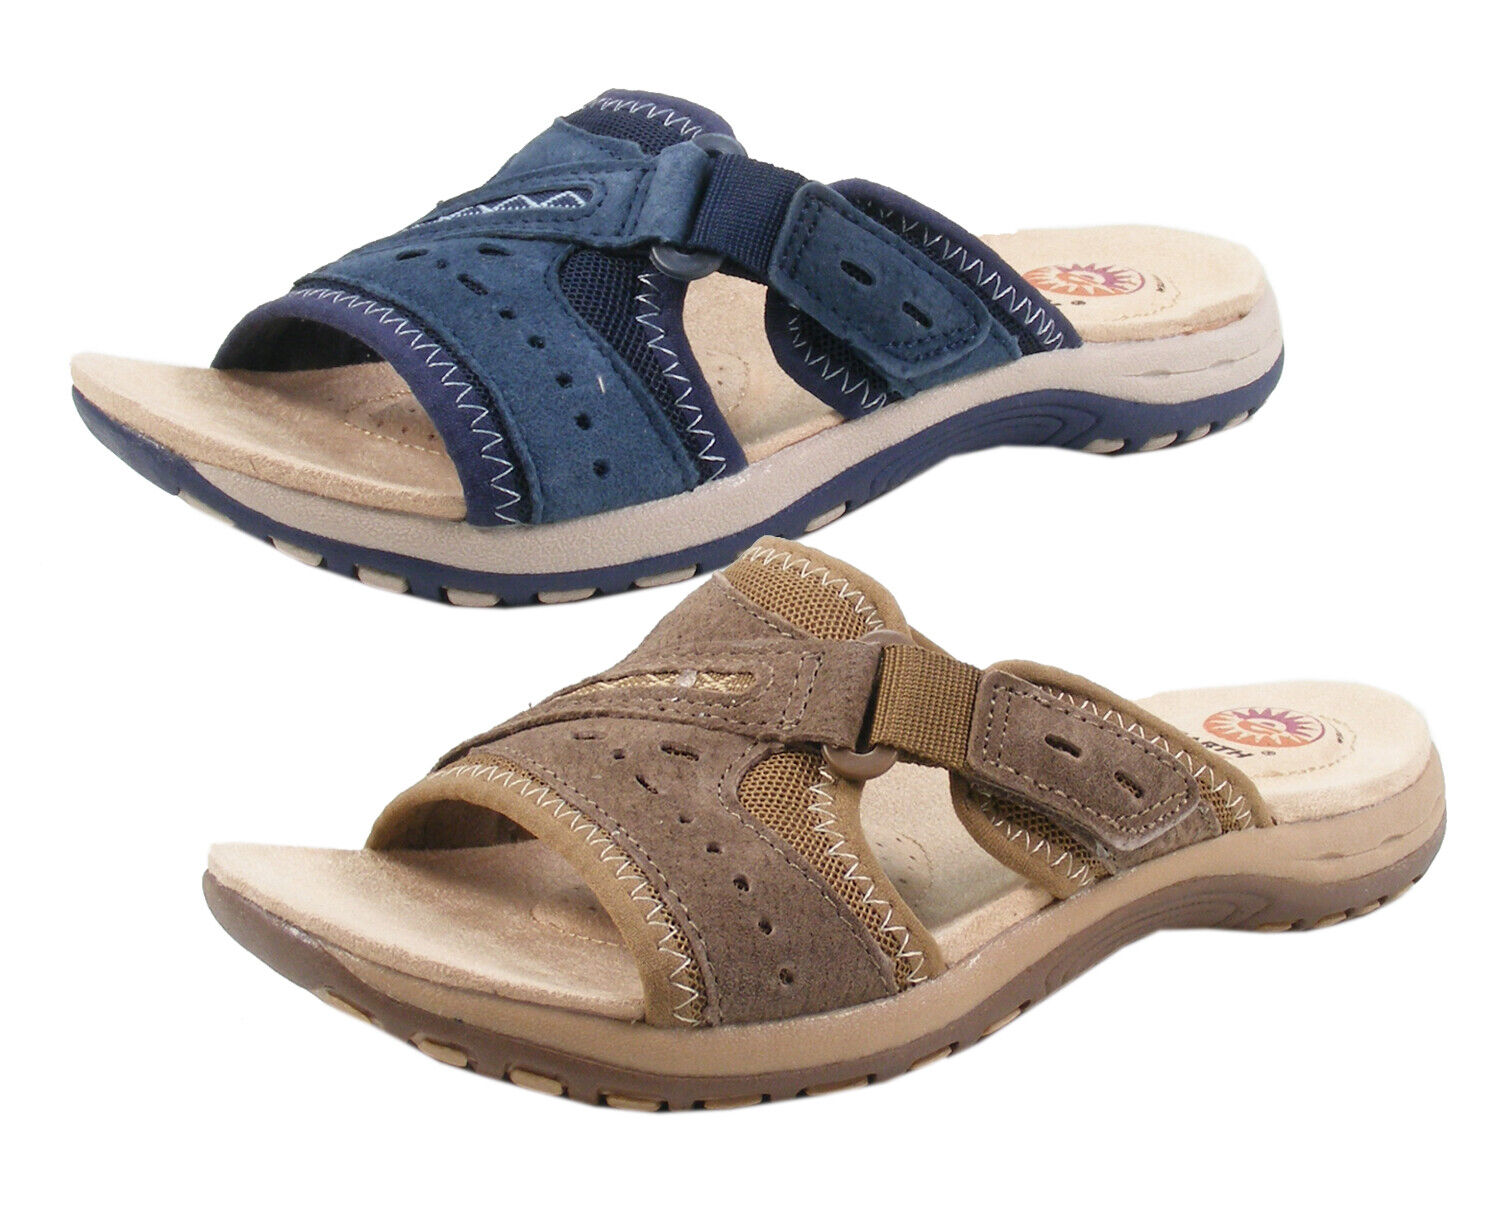 Earth Spirit Lakewood mujer Clogs Mules Leather